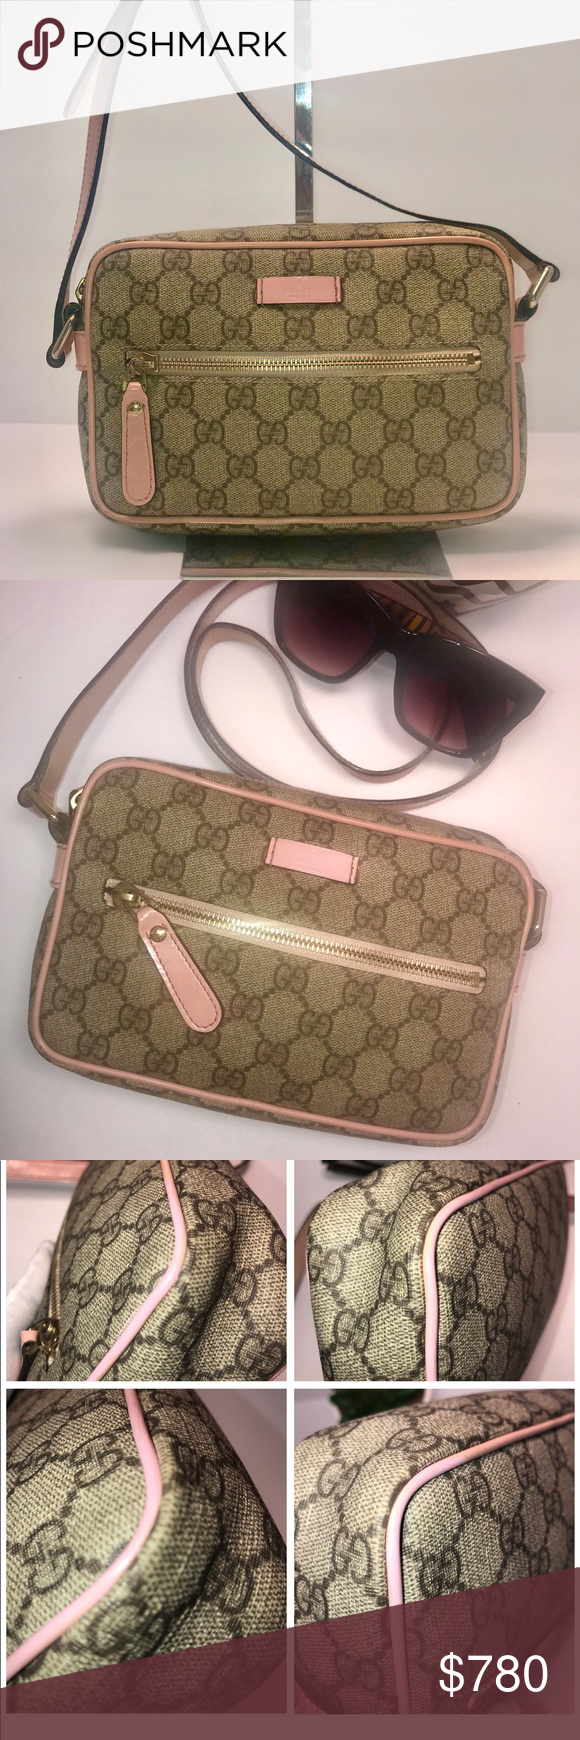 cb59a070f8e8 Authentic Gucci GG Monogram Beige/Pink Sling Bag Authentic Pre-Loved Gucci  GG Web